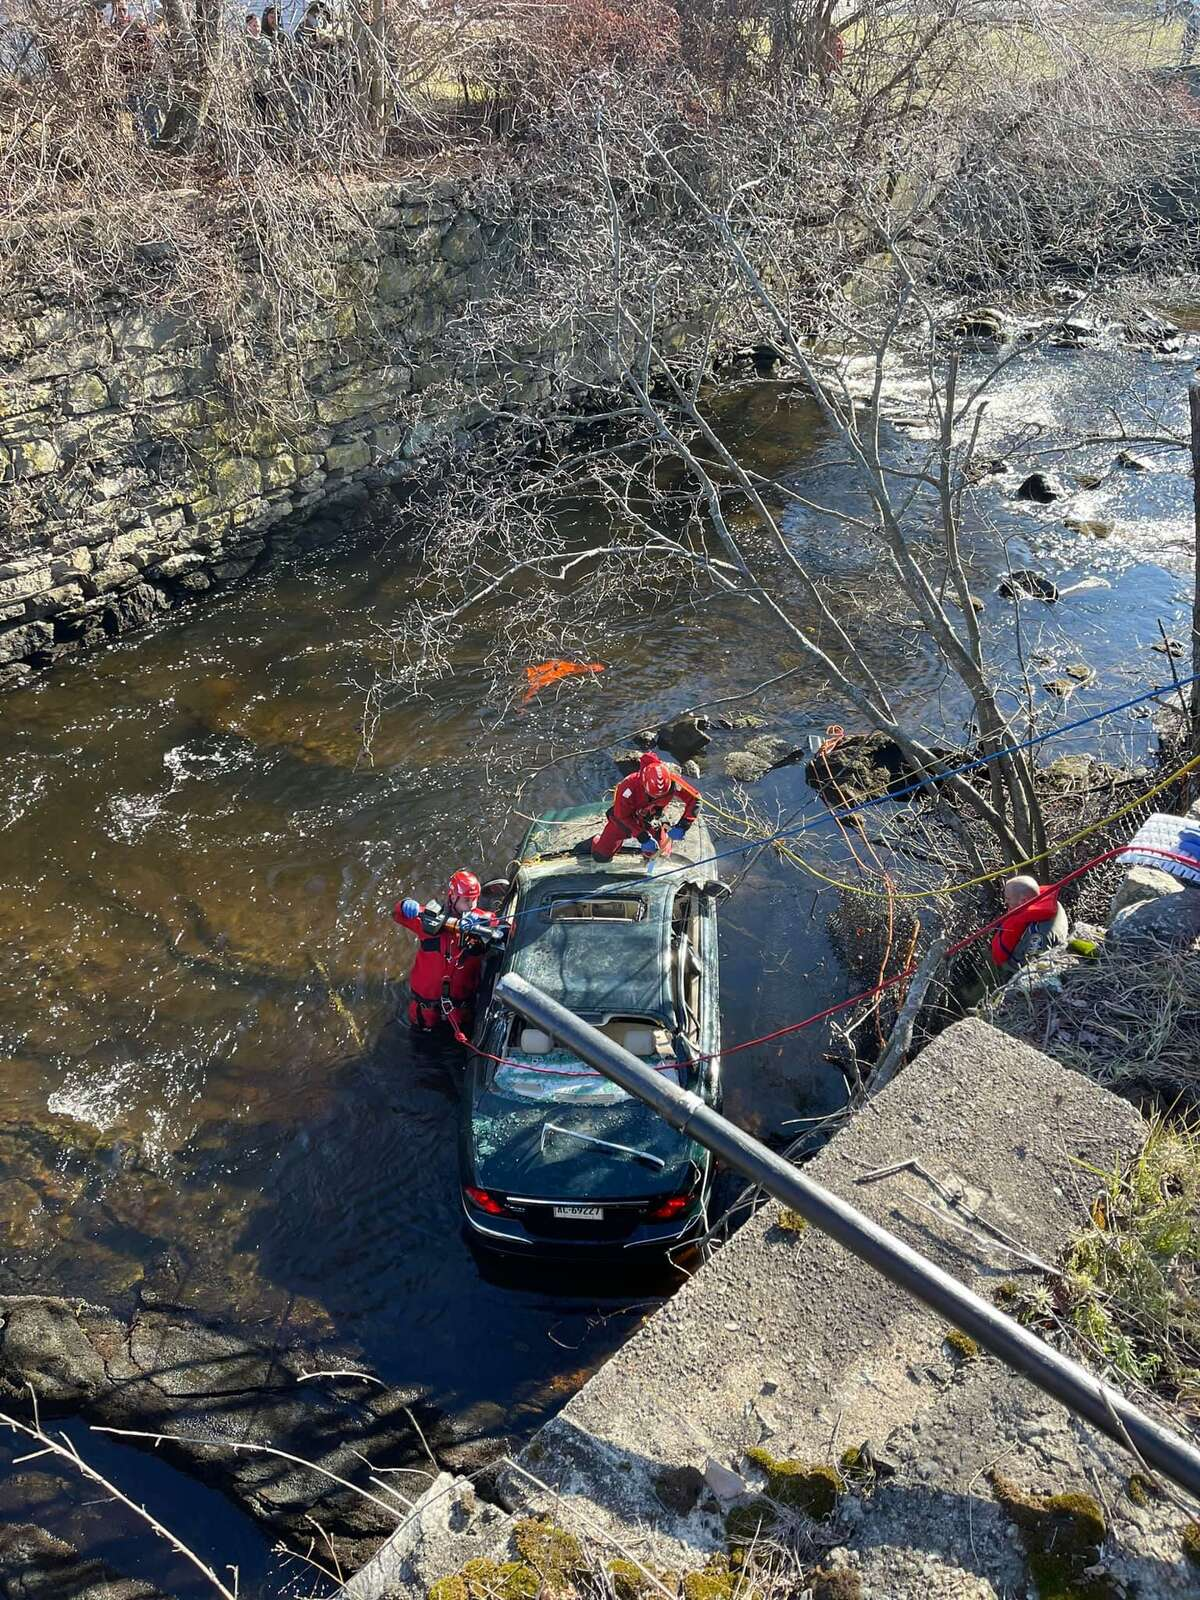 Emergency crews had to extricate a Plainfield driver from his vehicle after he crashed into the Five Mile River on Saturday.